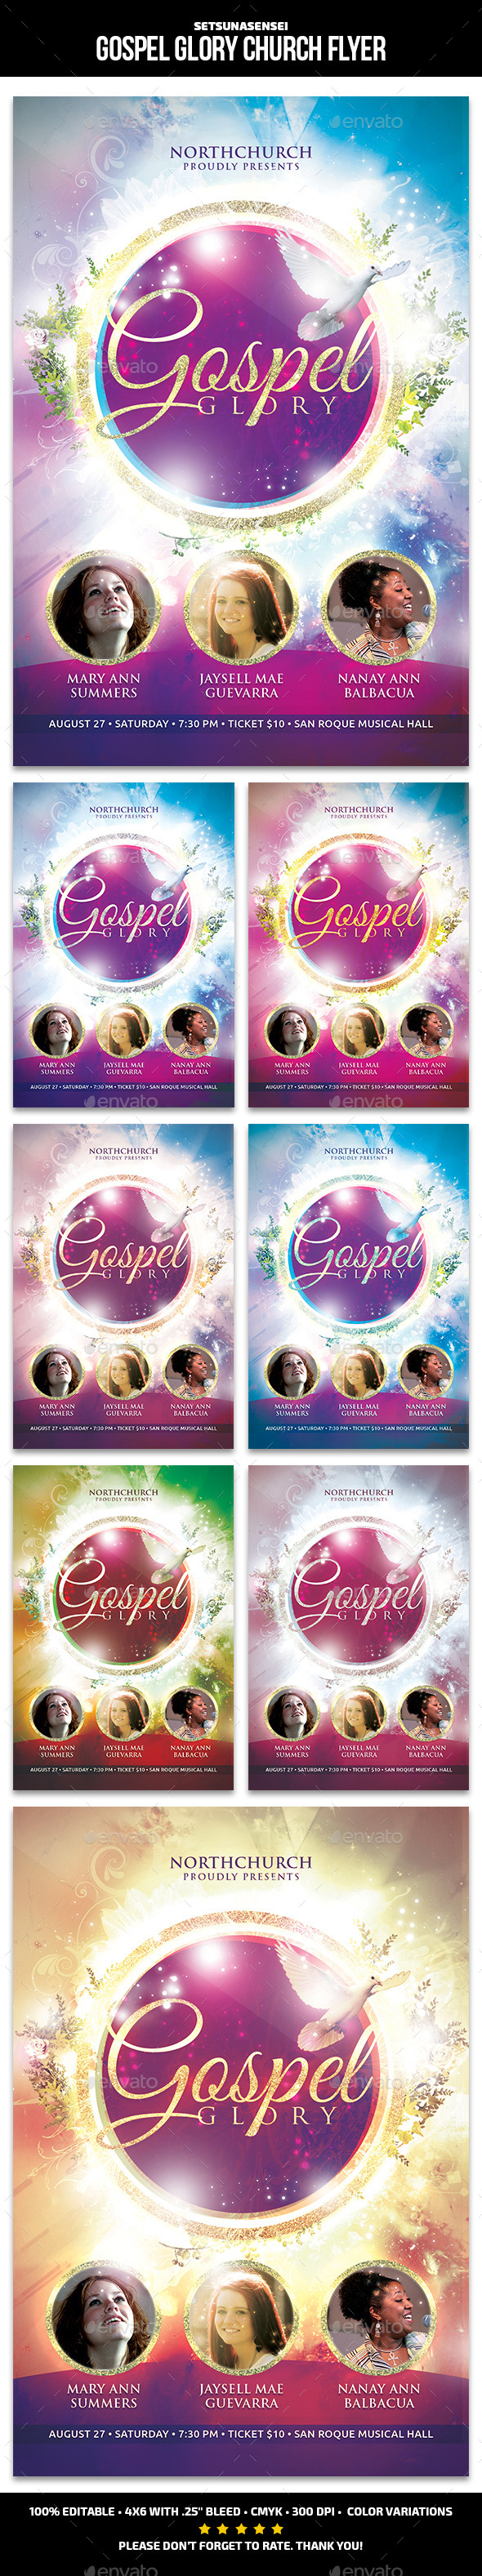 Gospel Glory Church Flyer - Church Flyers